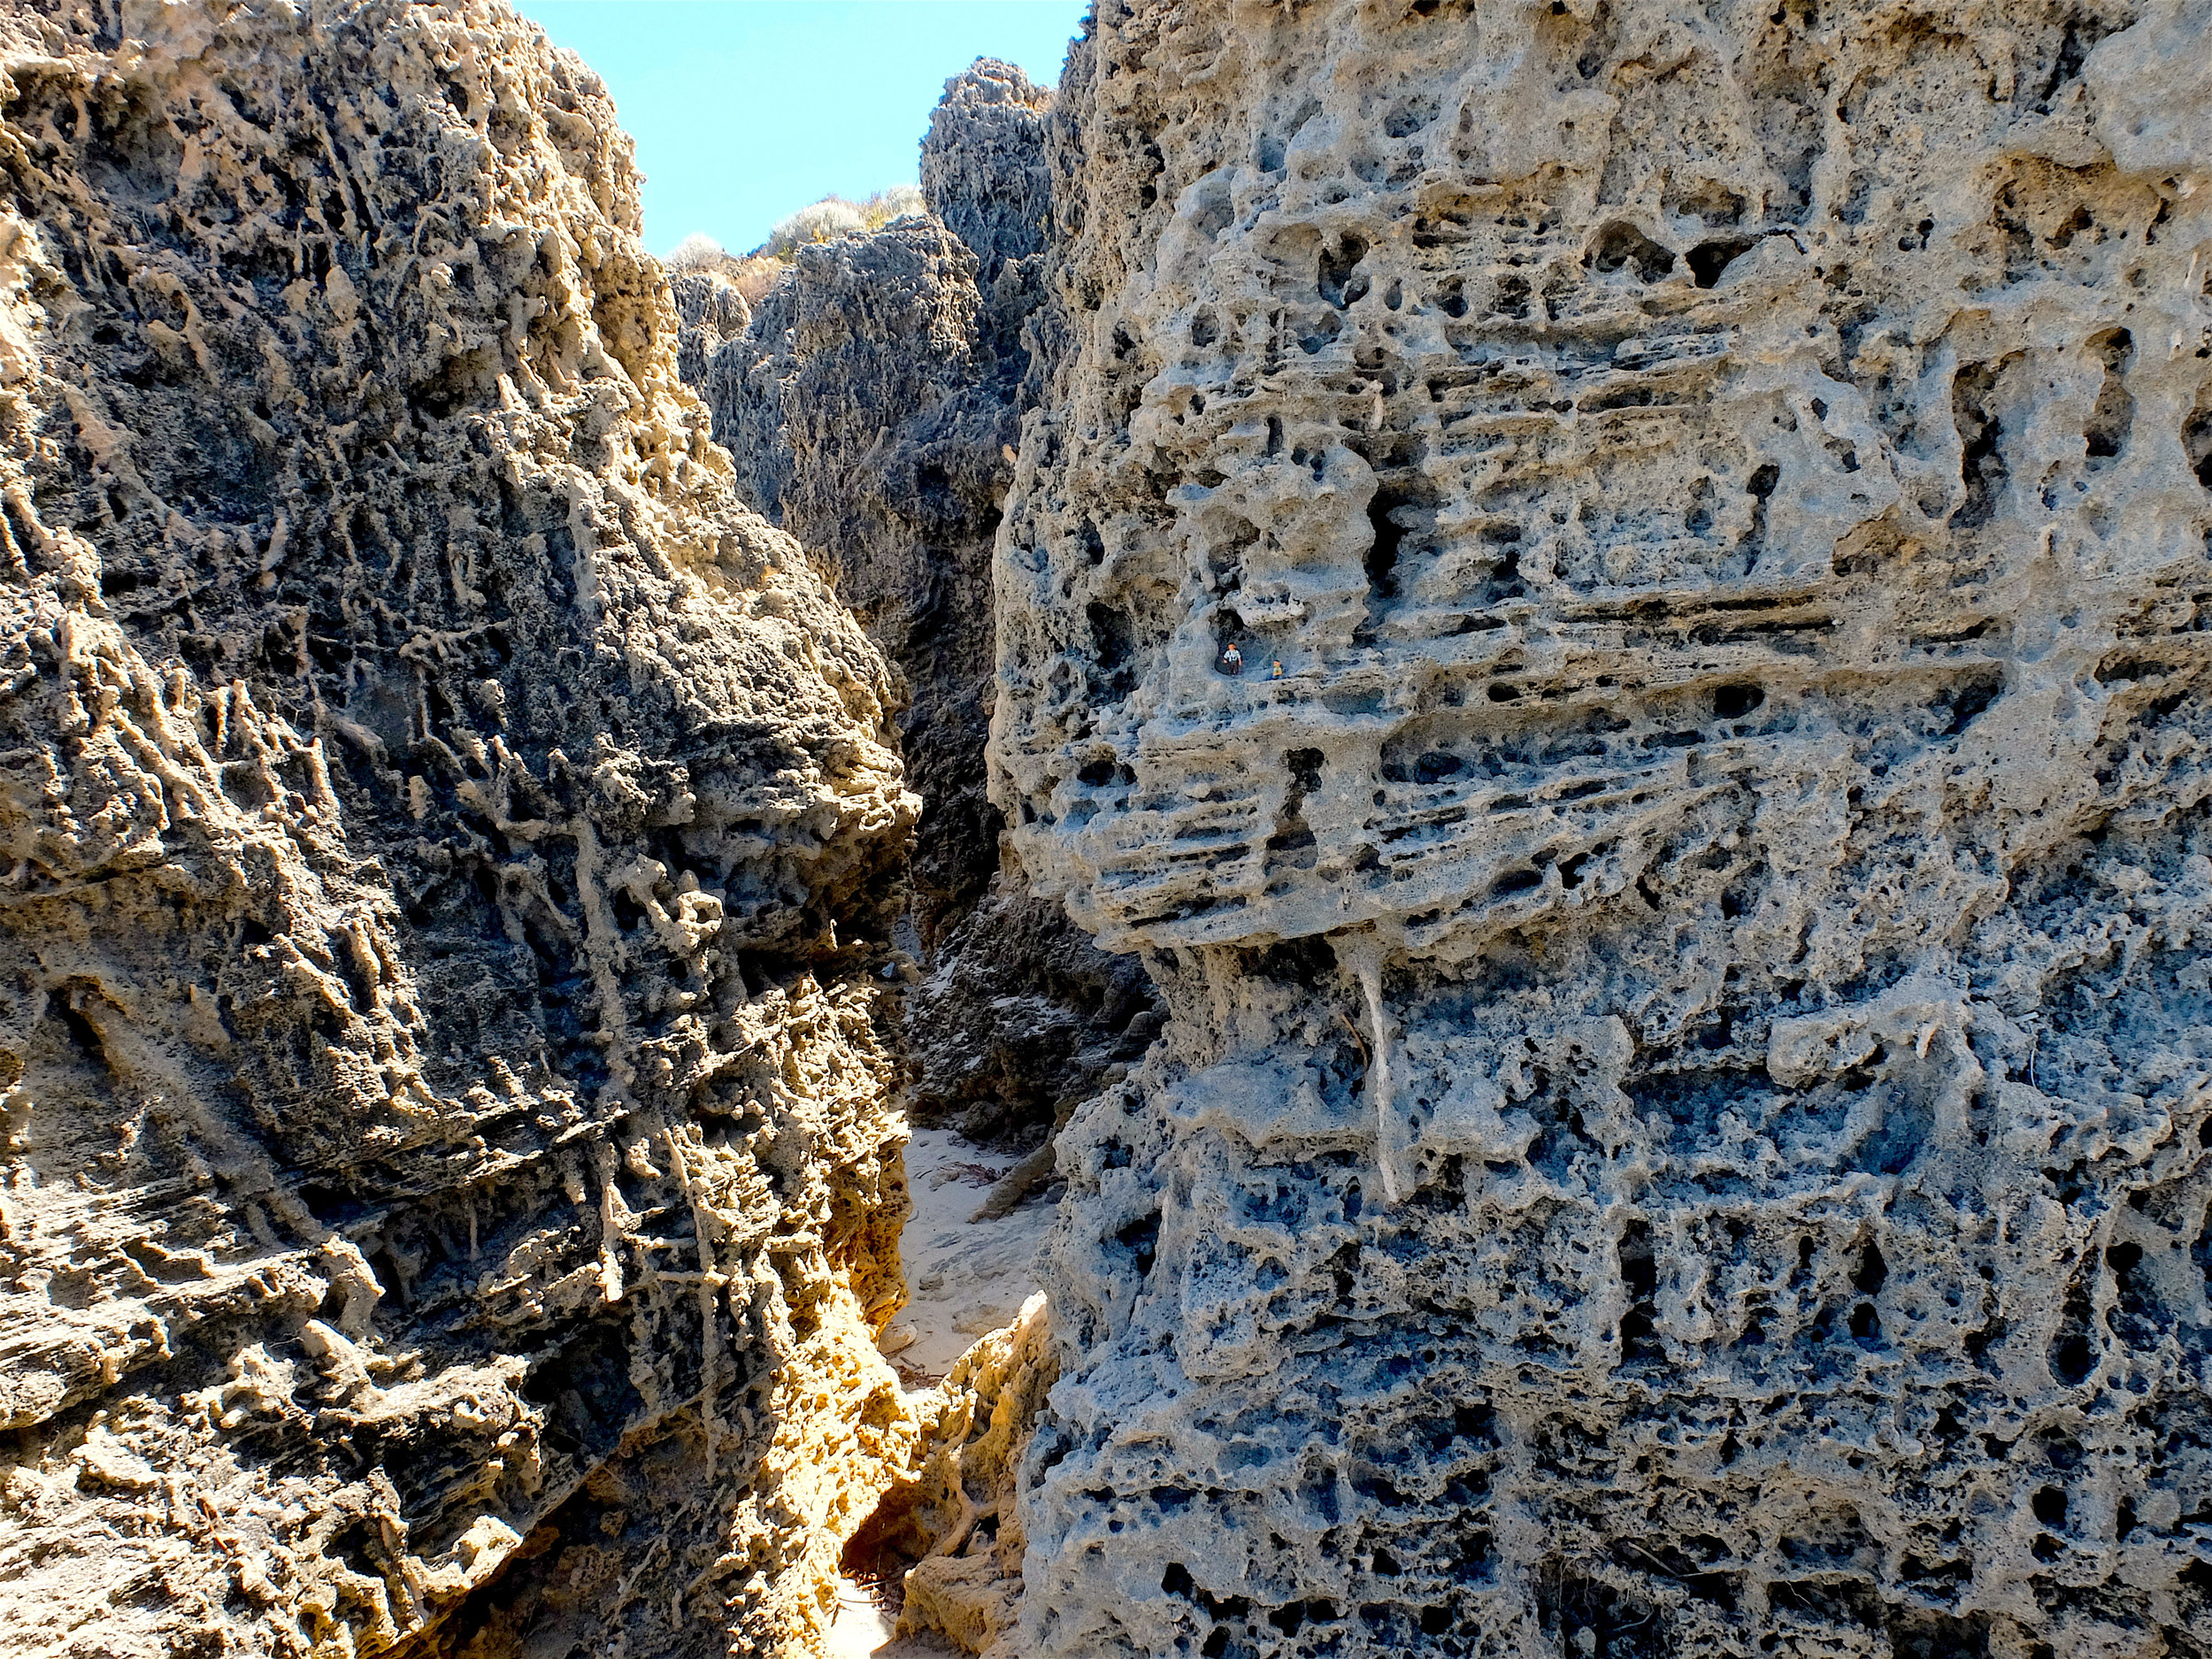 4. The Canyon